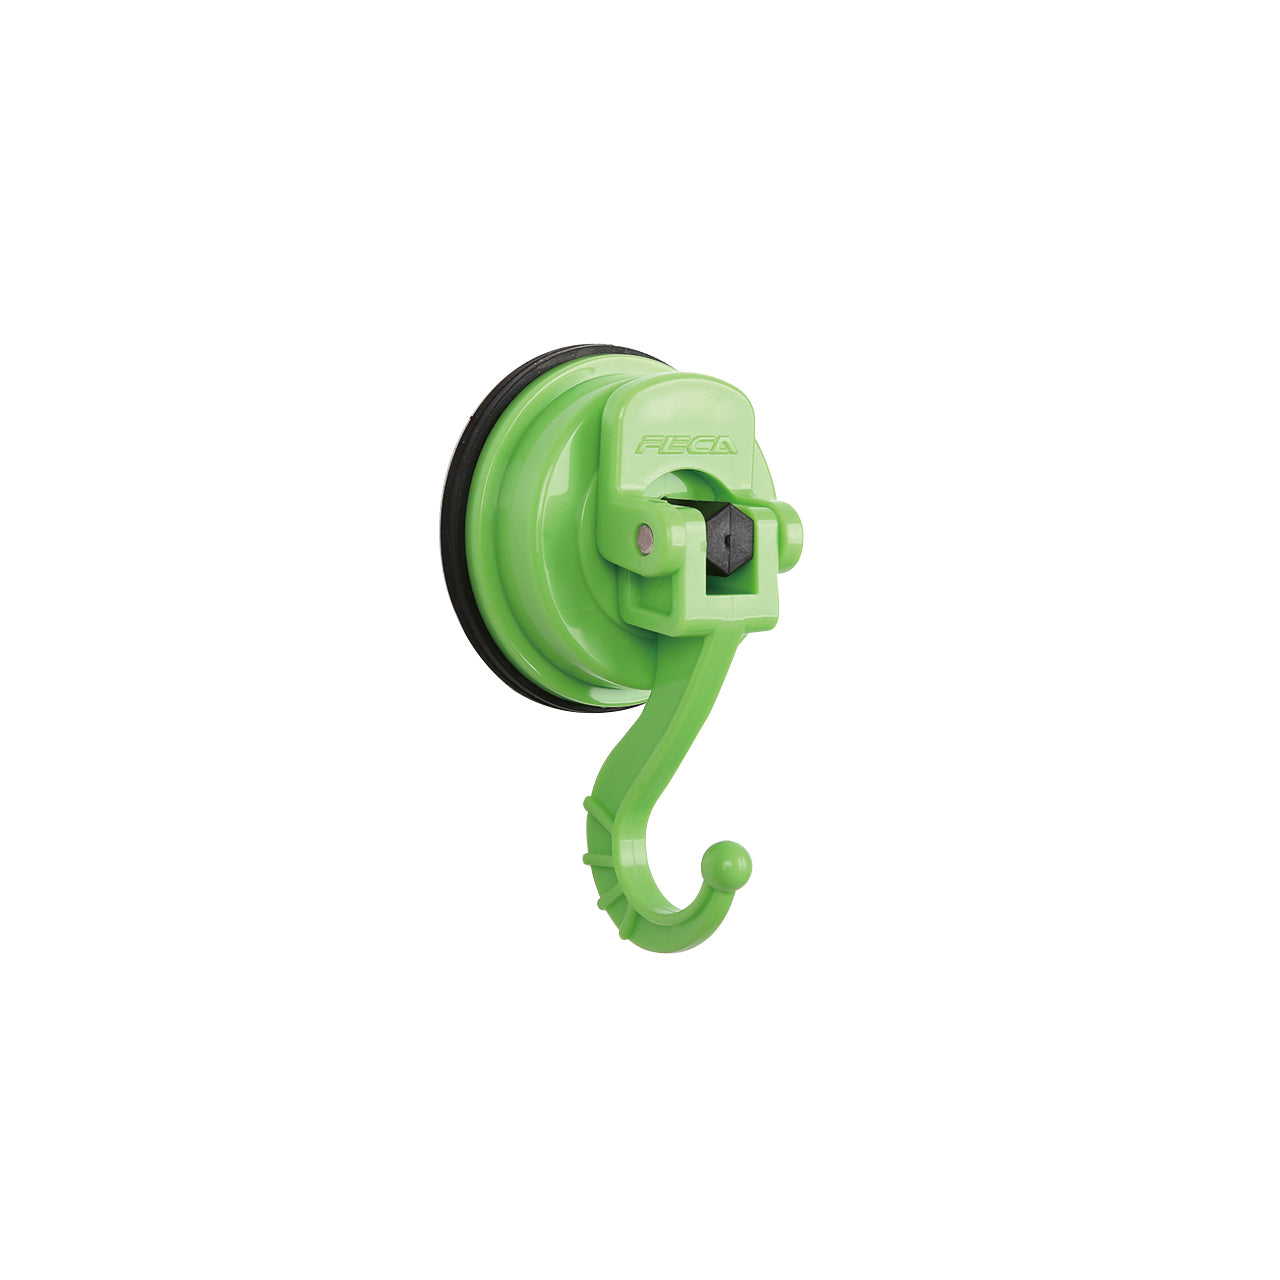 D26 DIANA SUCTION HOOK [Color: Green]